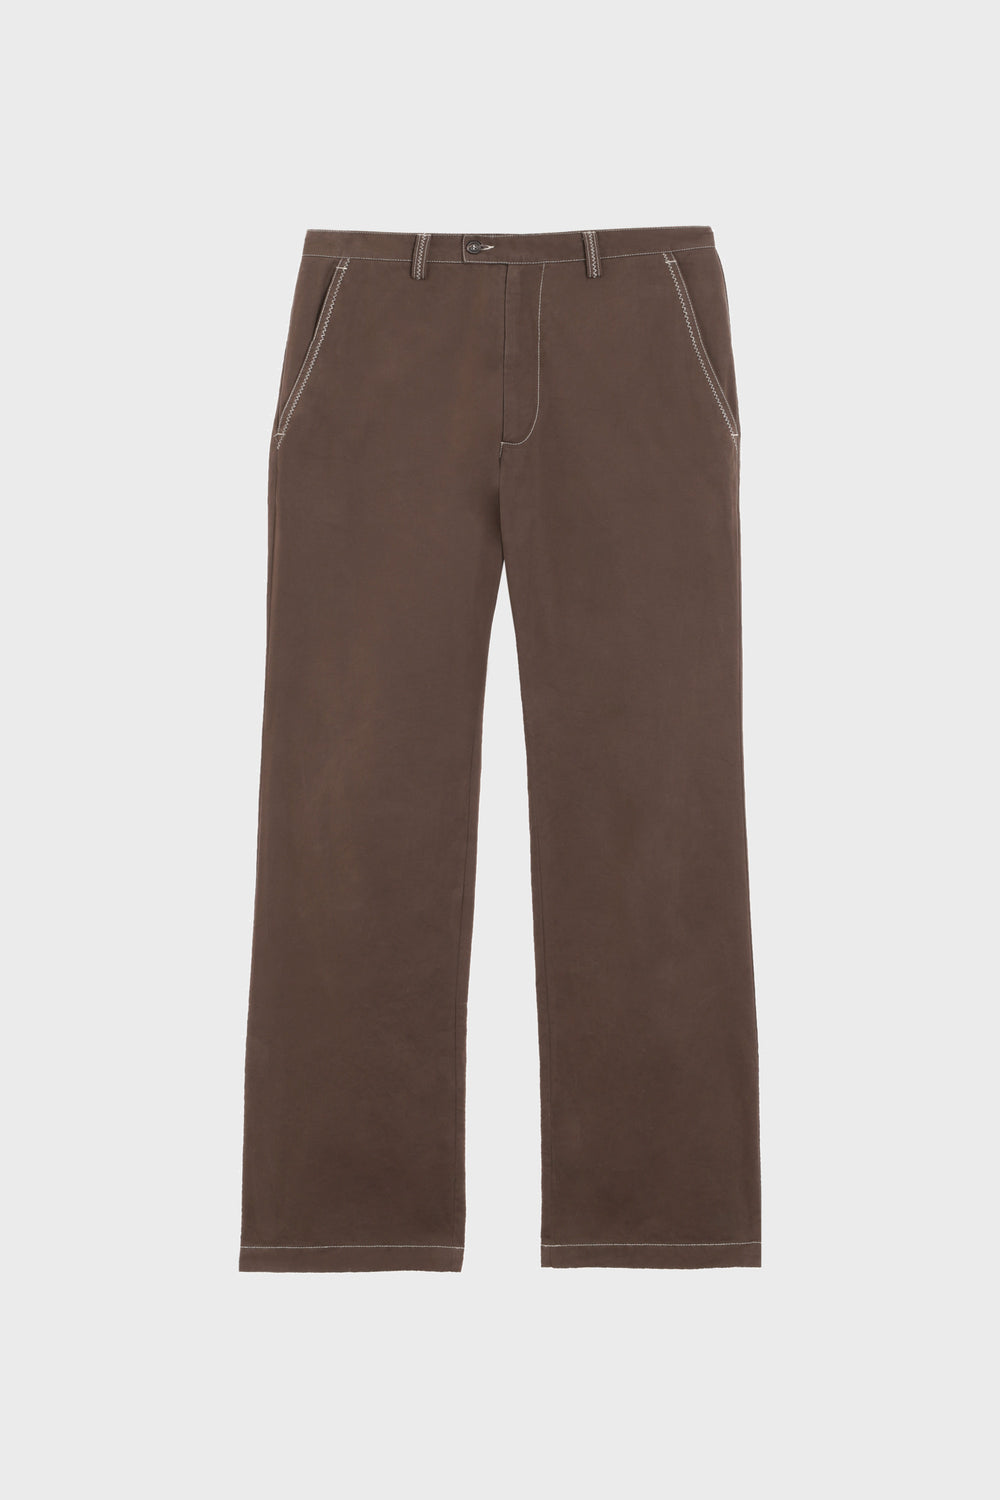 product-color-Dad Pants